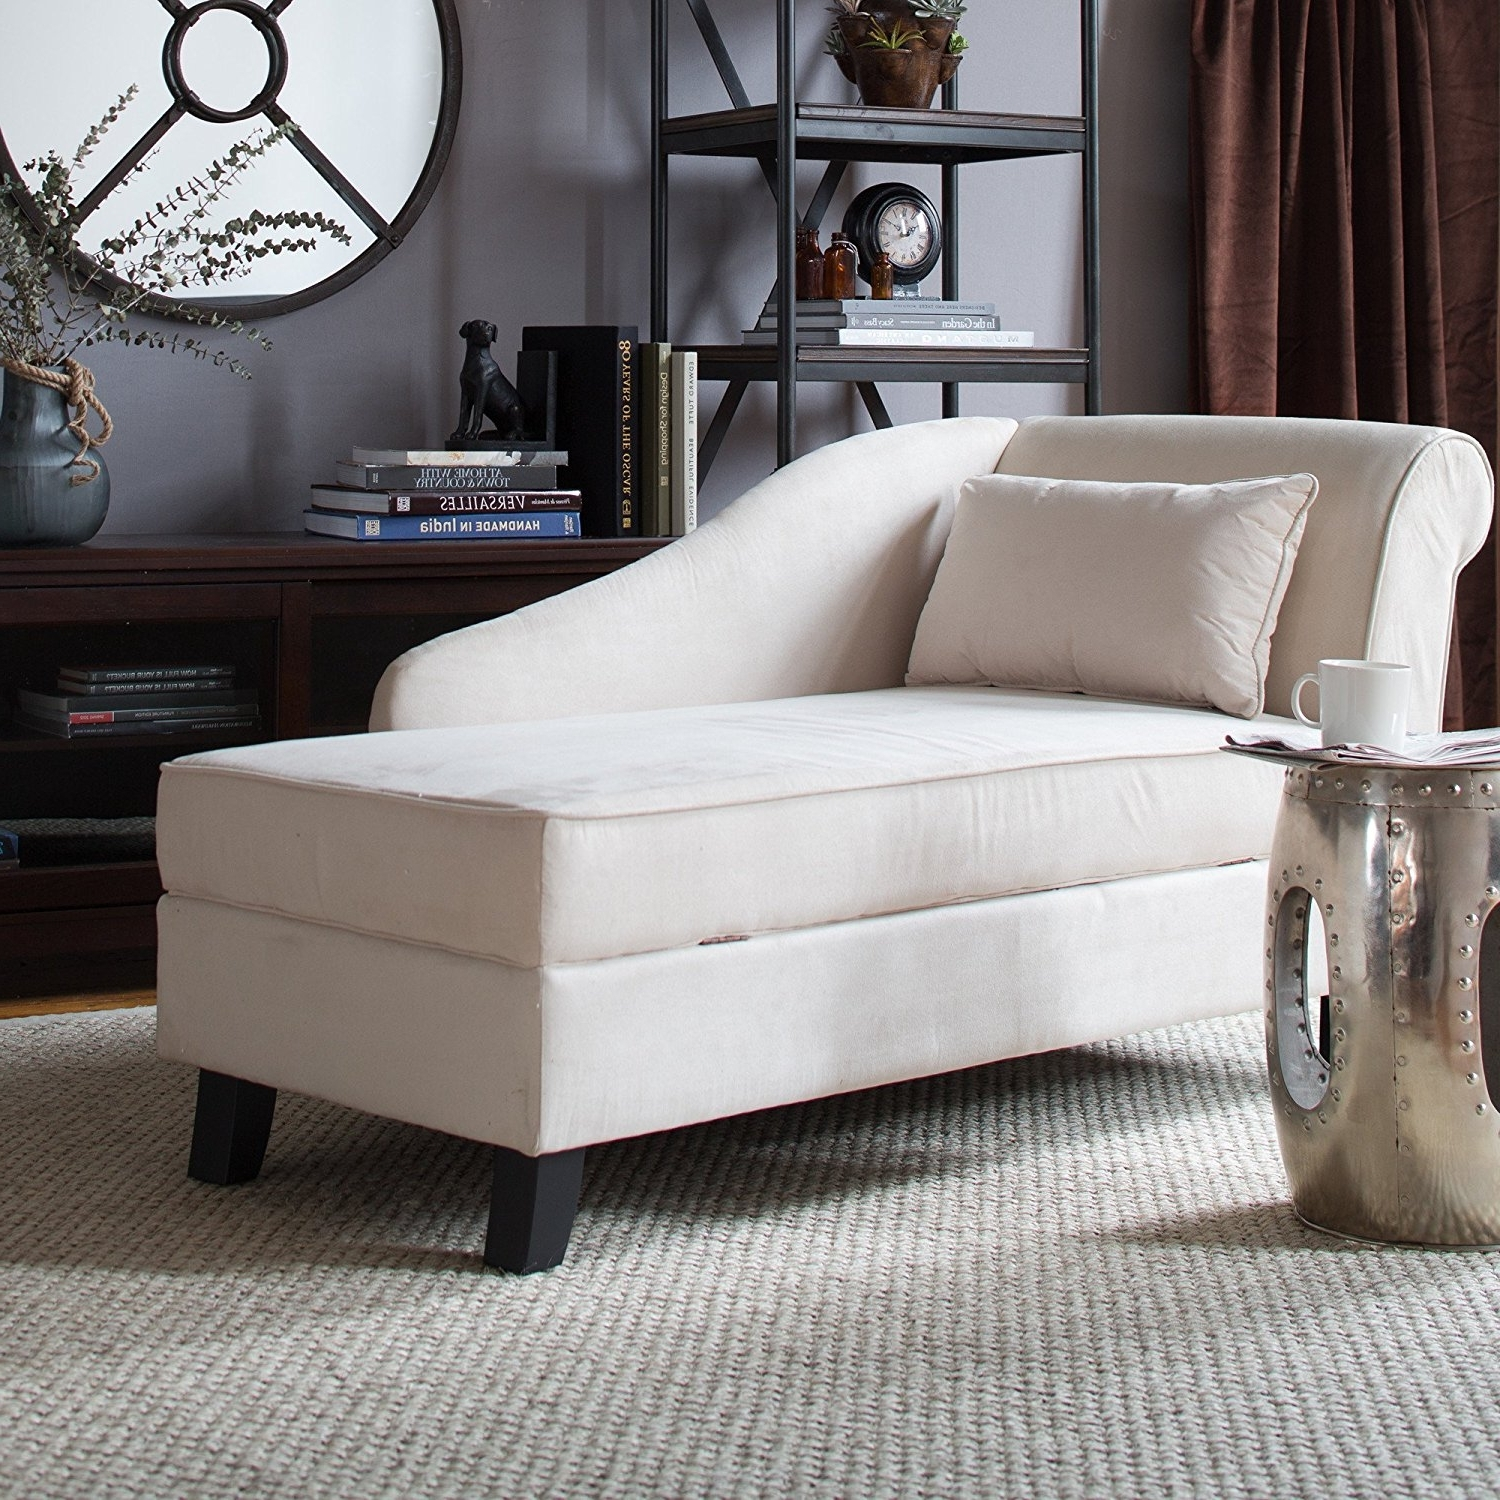 Fashionable Chaise Lounge Chairs For Small Spaces Regarding Home Designs : Living Room Chaise Lounge Chairs Sofa Cool Lounge (View 9 of 15)